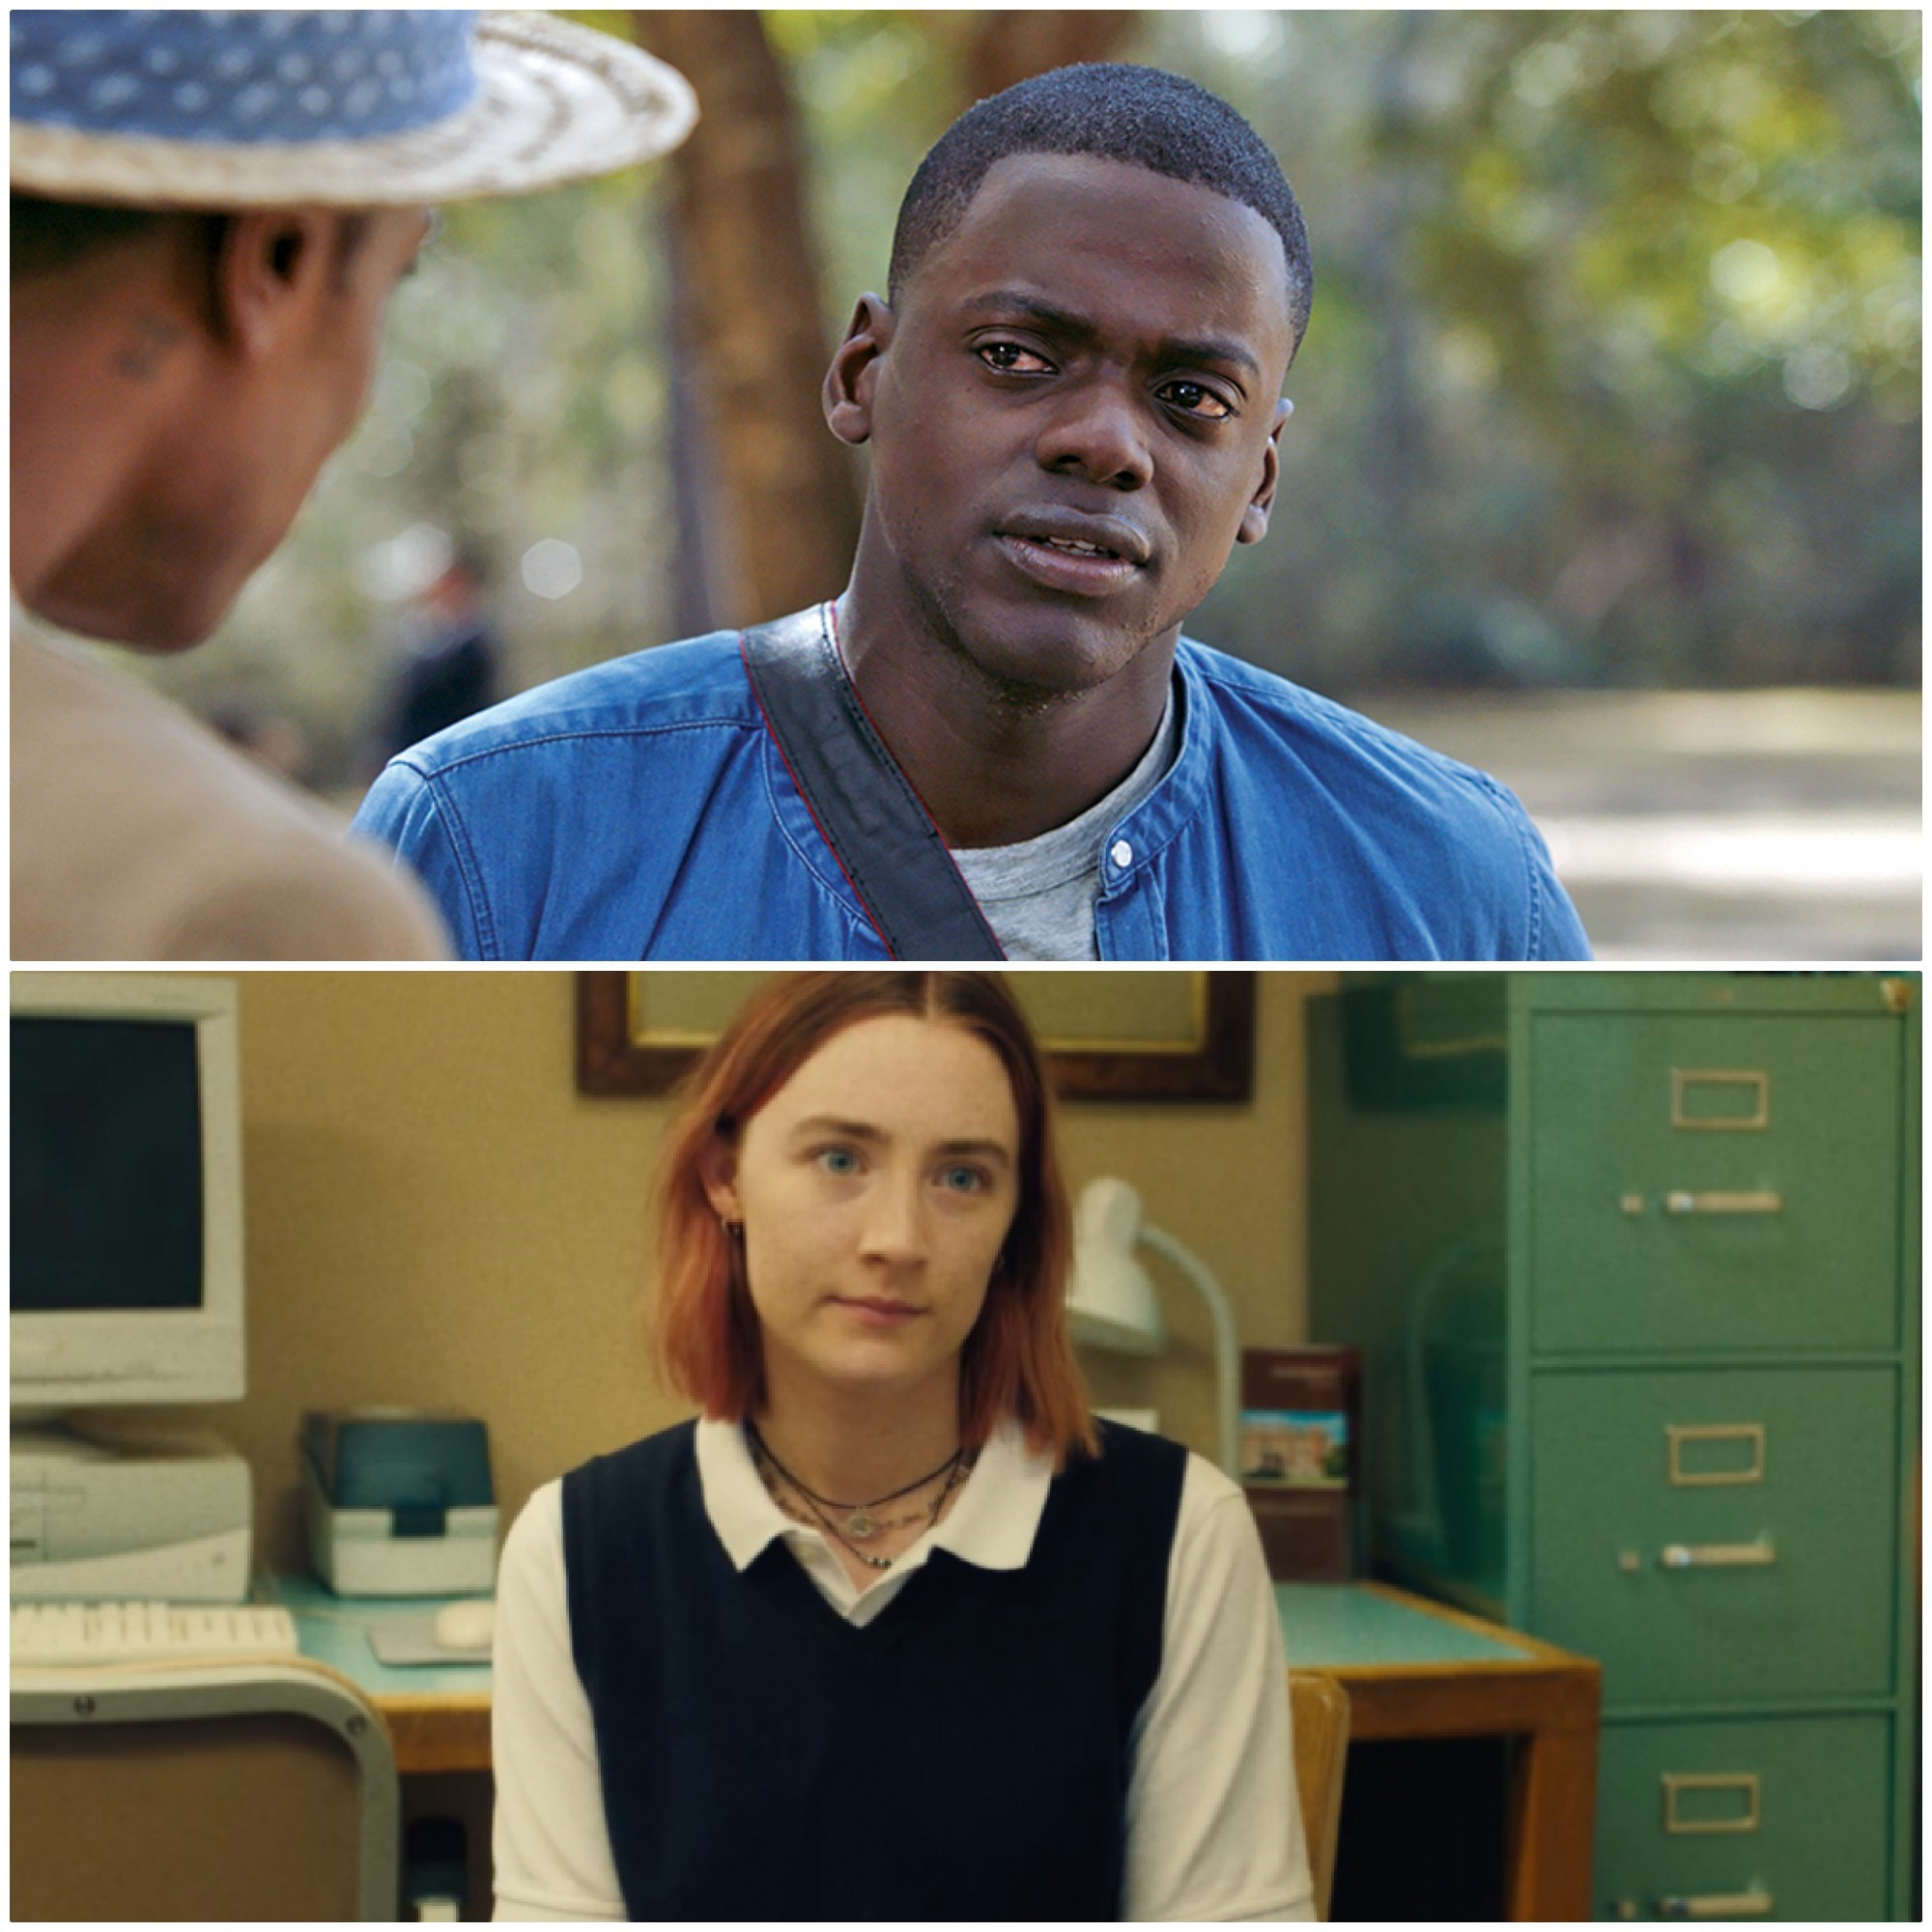 Get Out (Top) / Lady Bird (Bottom)